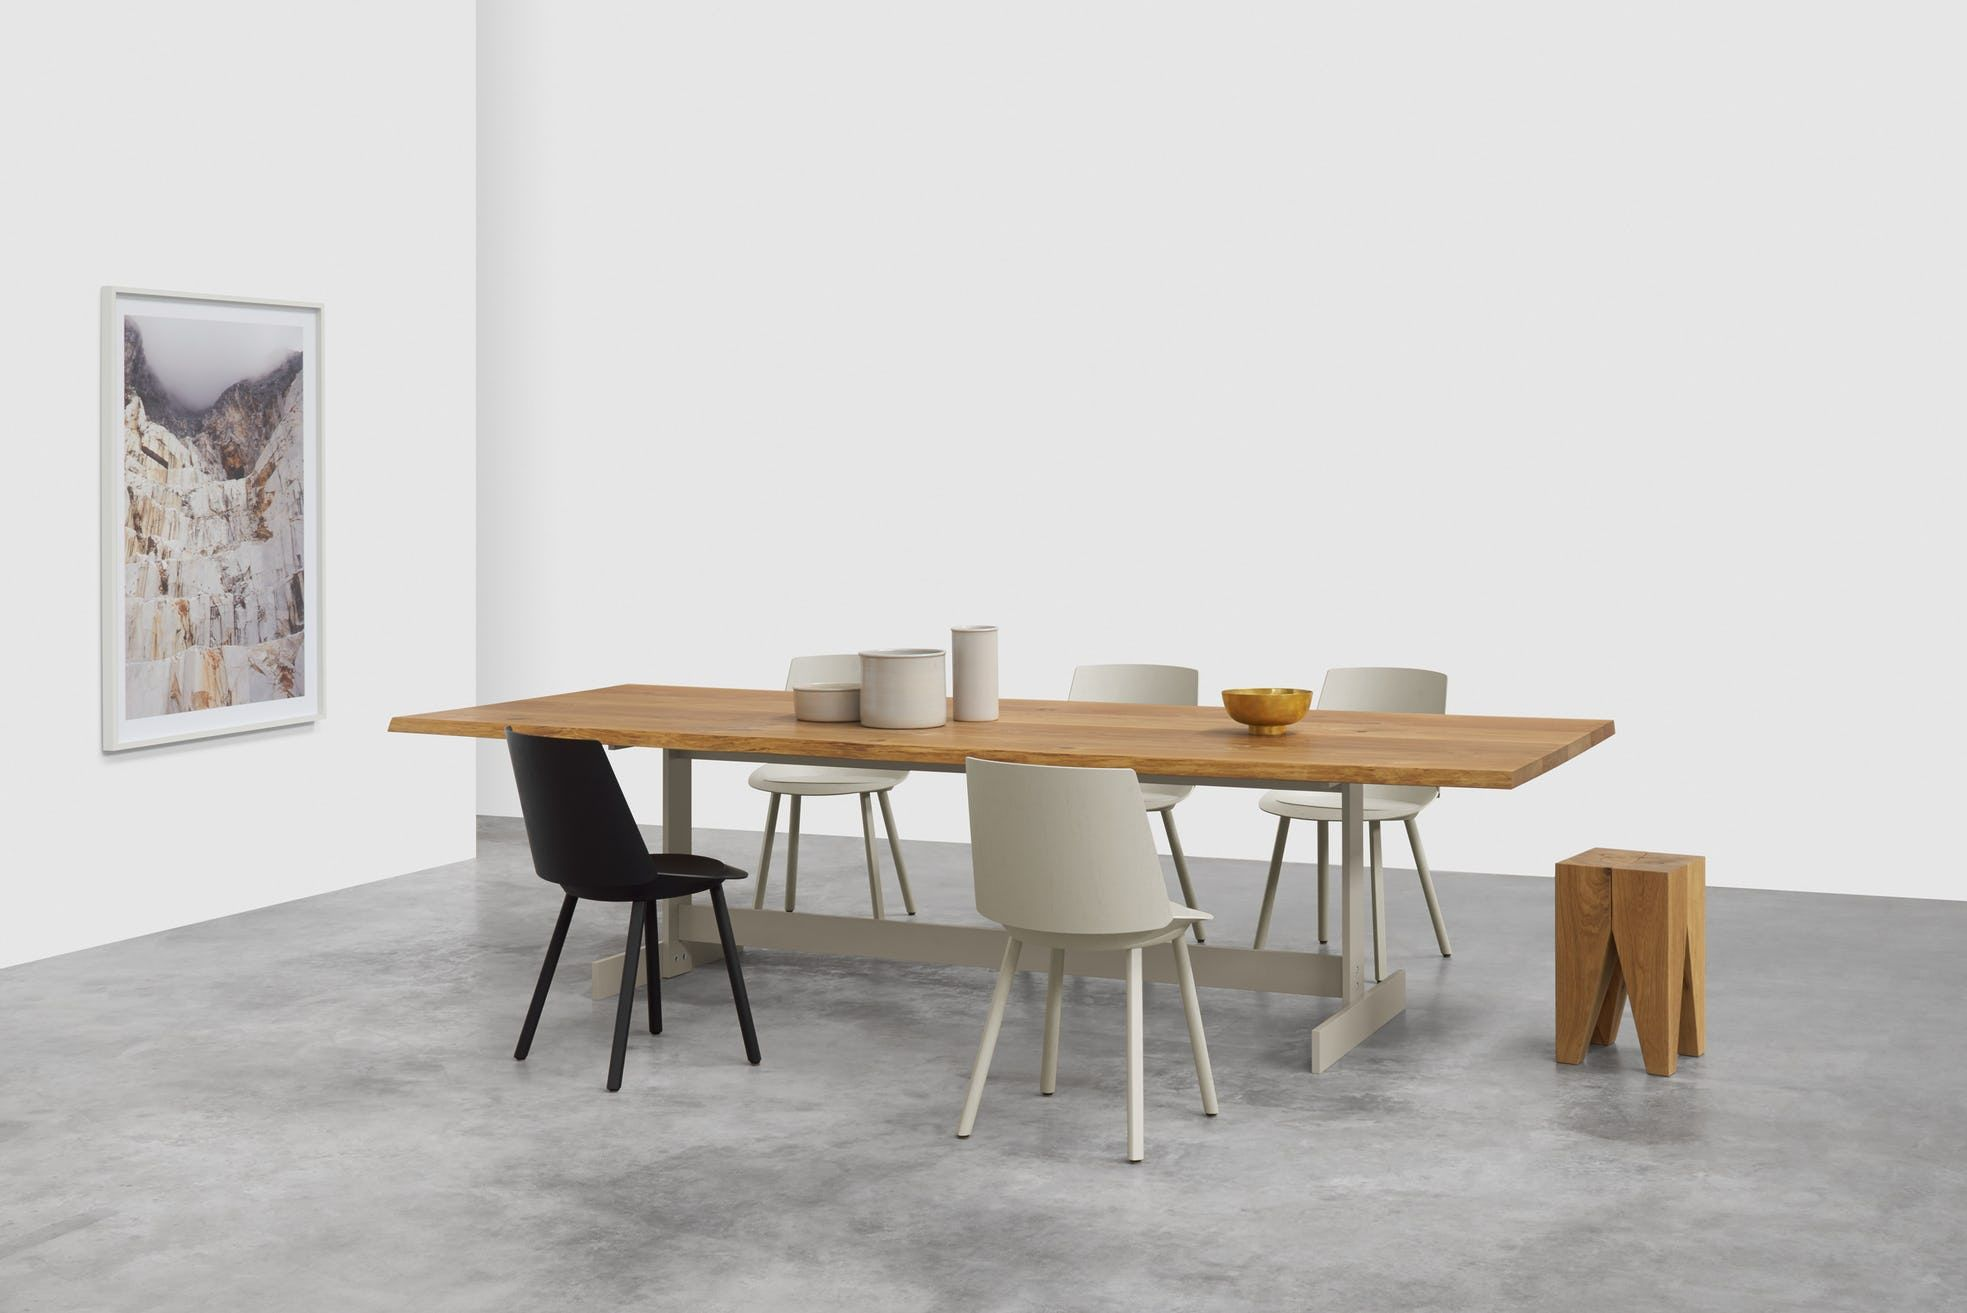 Kazmir Raw Table By E15 Furniture Now Available At Haute Living